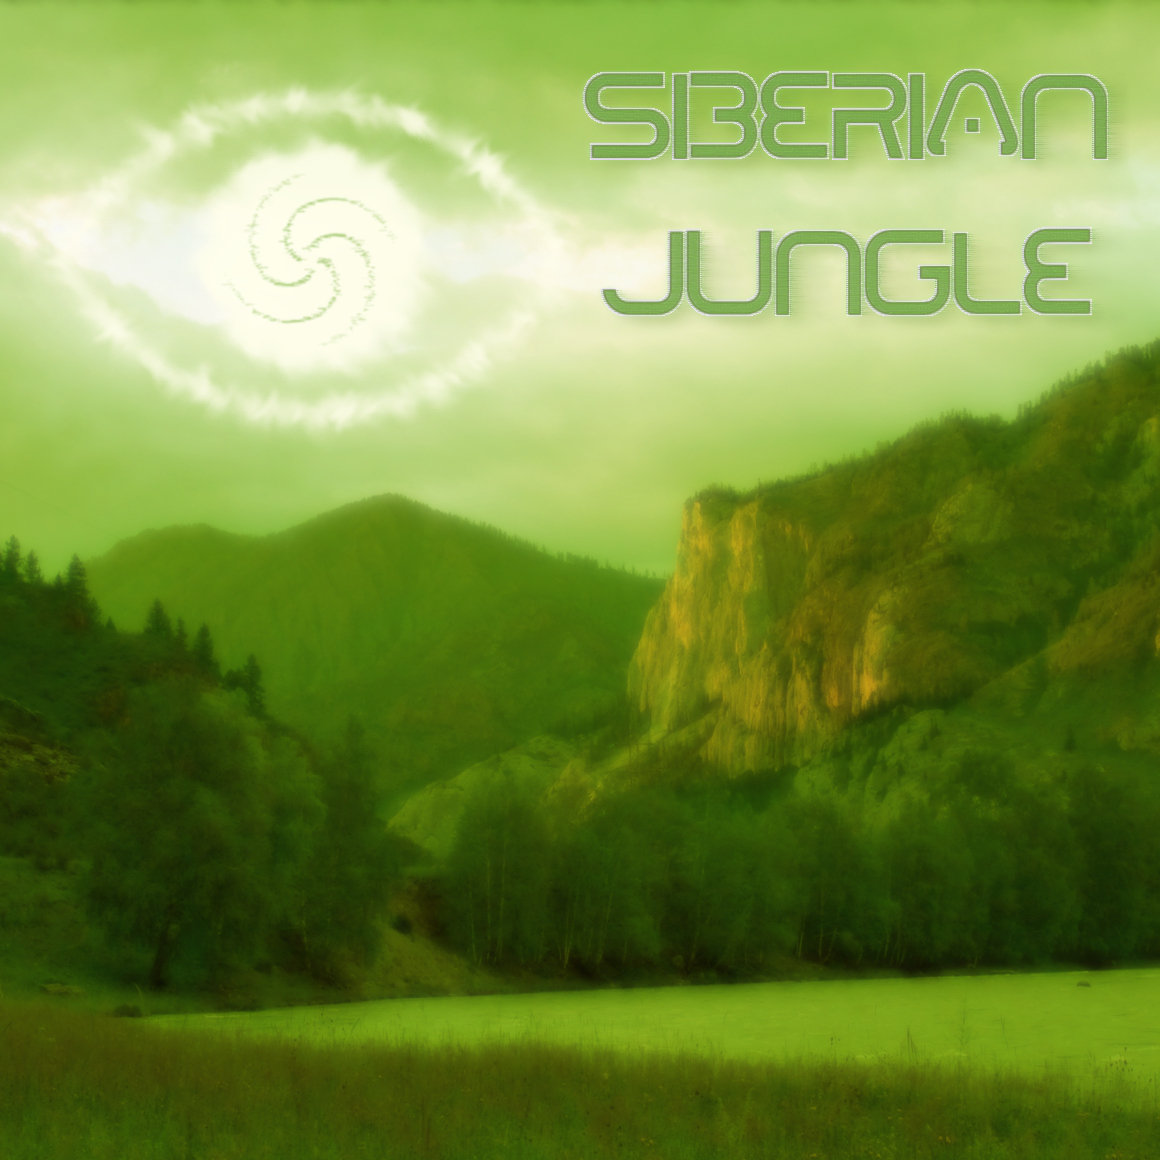 cj Ools - Sleeping Pills @ 'Siberian Jungle - Volume 4' album (electronic, liquid funk)